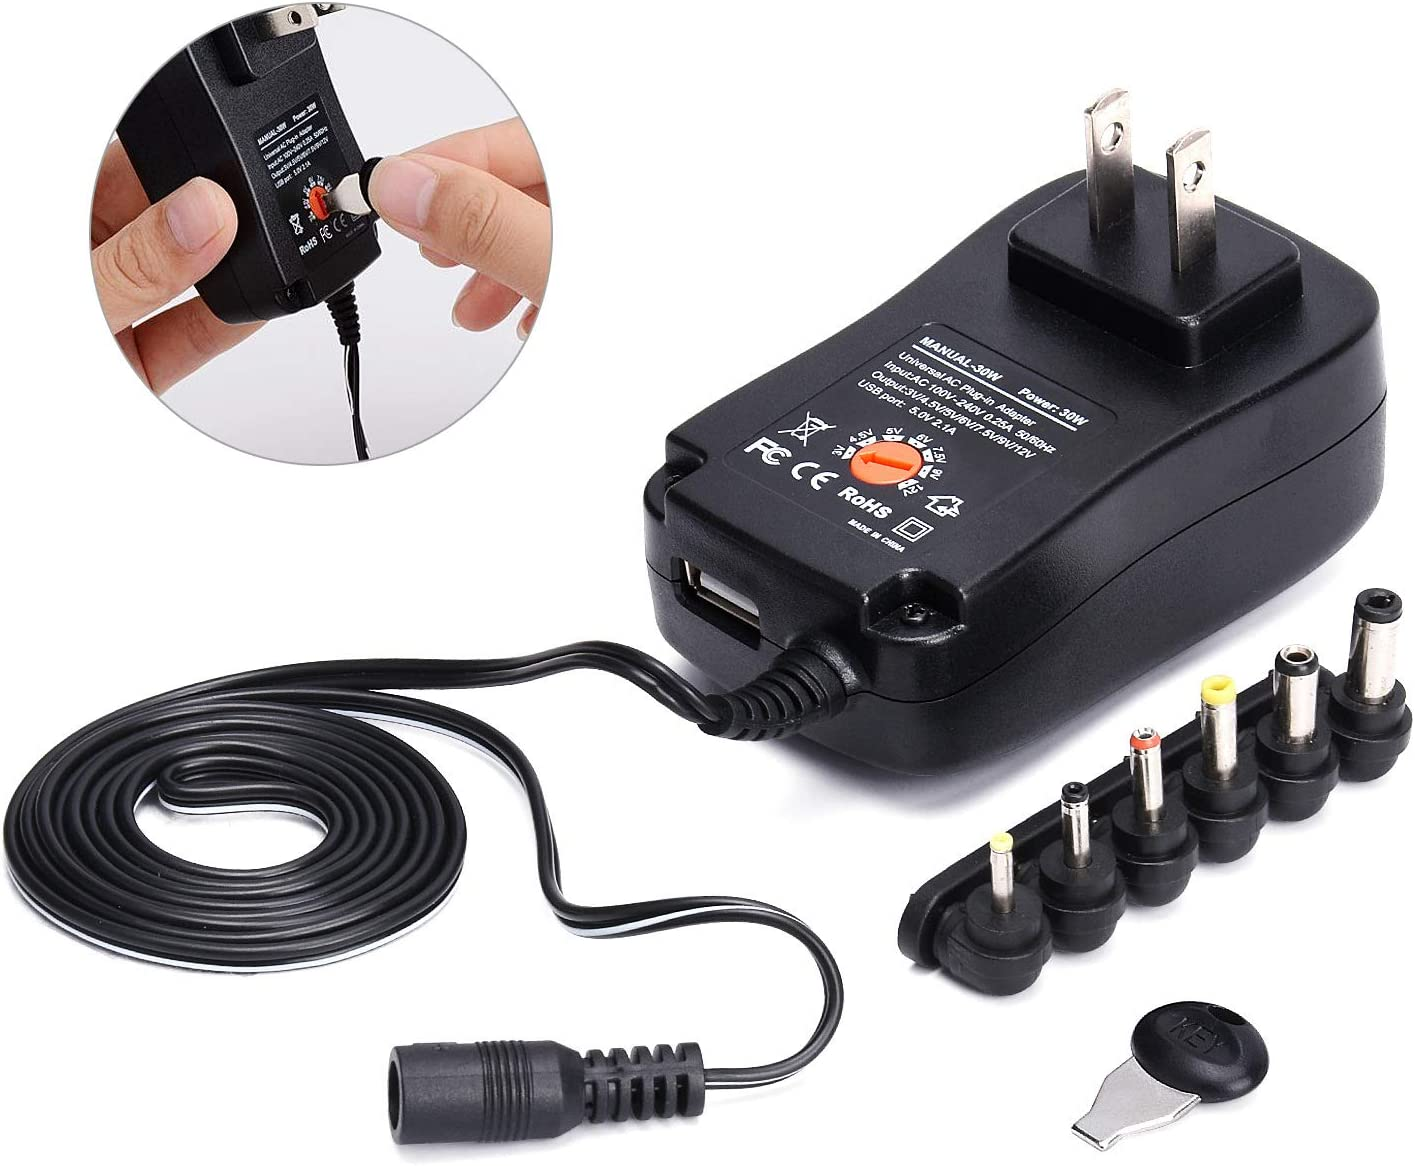 3-12V Adjustable Power Adapter 30W DC Plug-in Charger w// USB Port